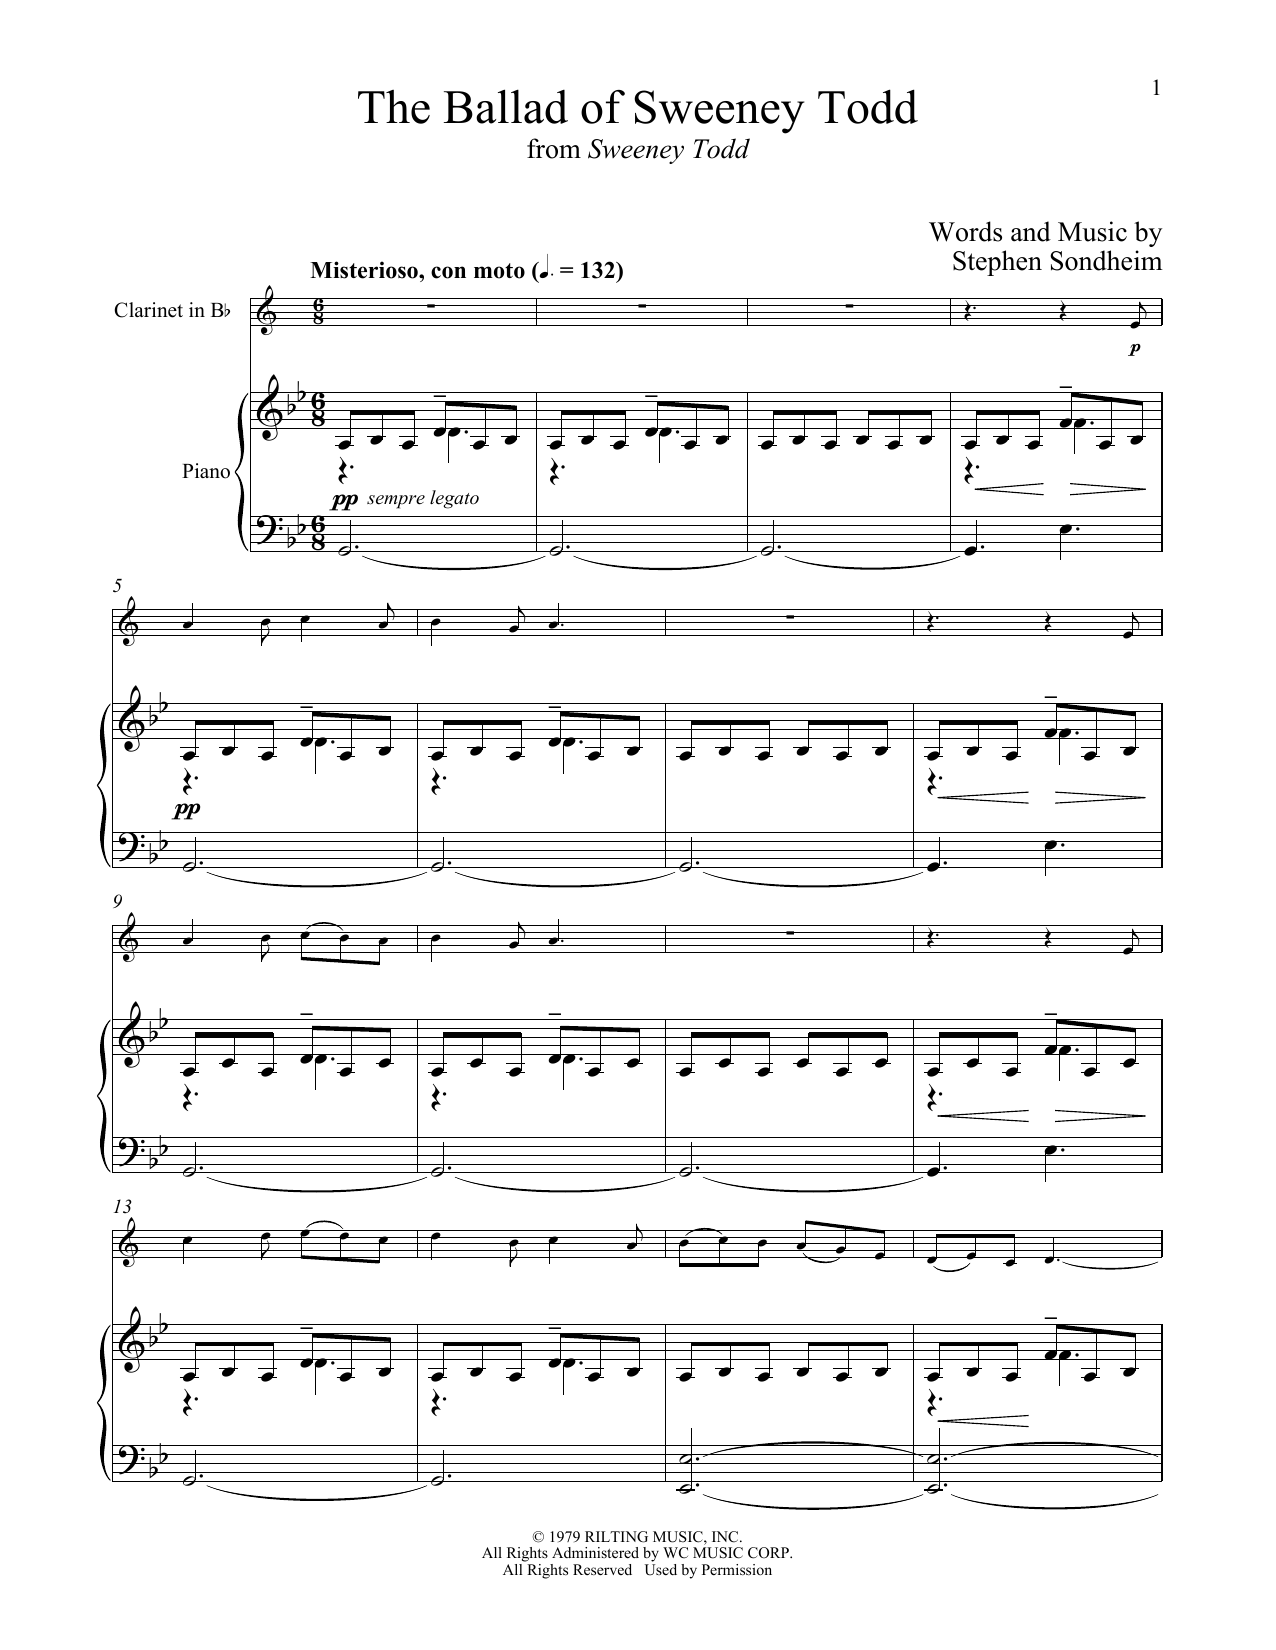 Stephen Sondheim The Ballad Of Sweeney Todd From Sweeney Todd Sheet Music Download Pdf Score 426524